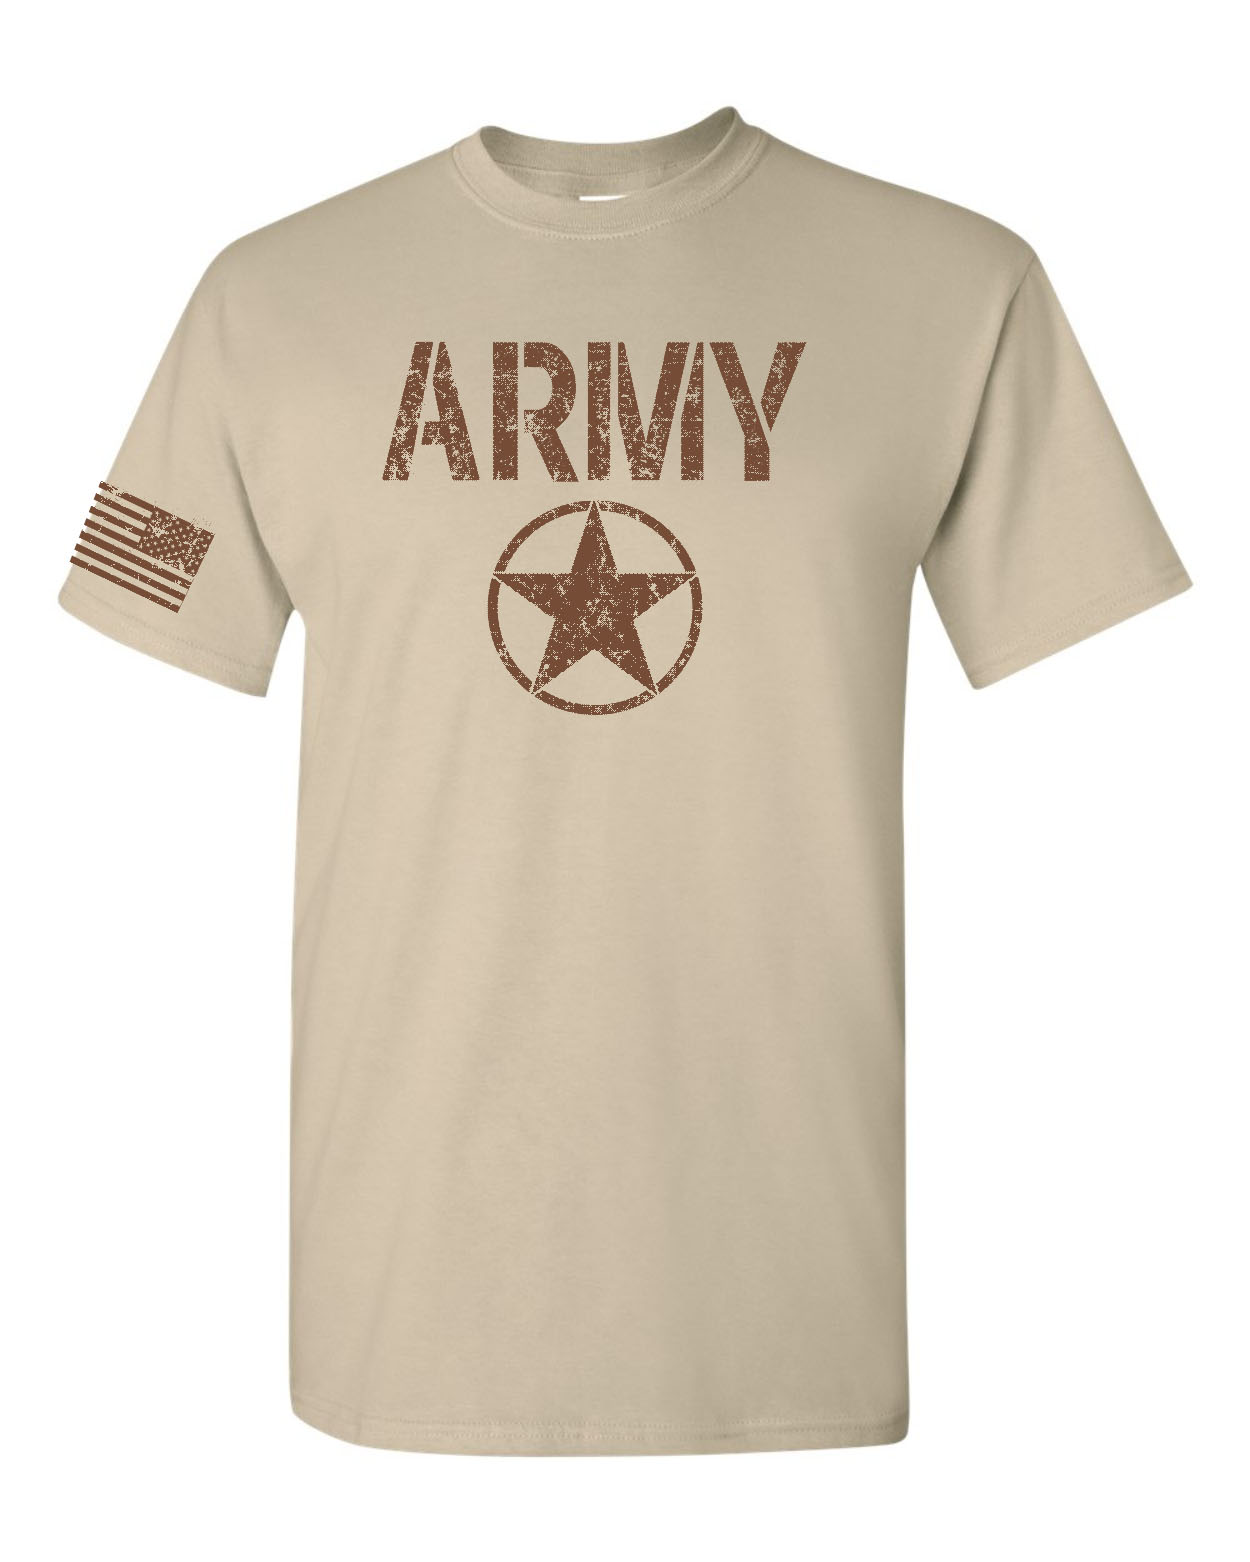 79750c5859ac United States ARMY Star US FLAG on Sleeve Sand w/Brown Men's Tee Shirt 1757